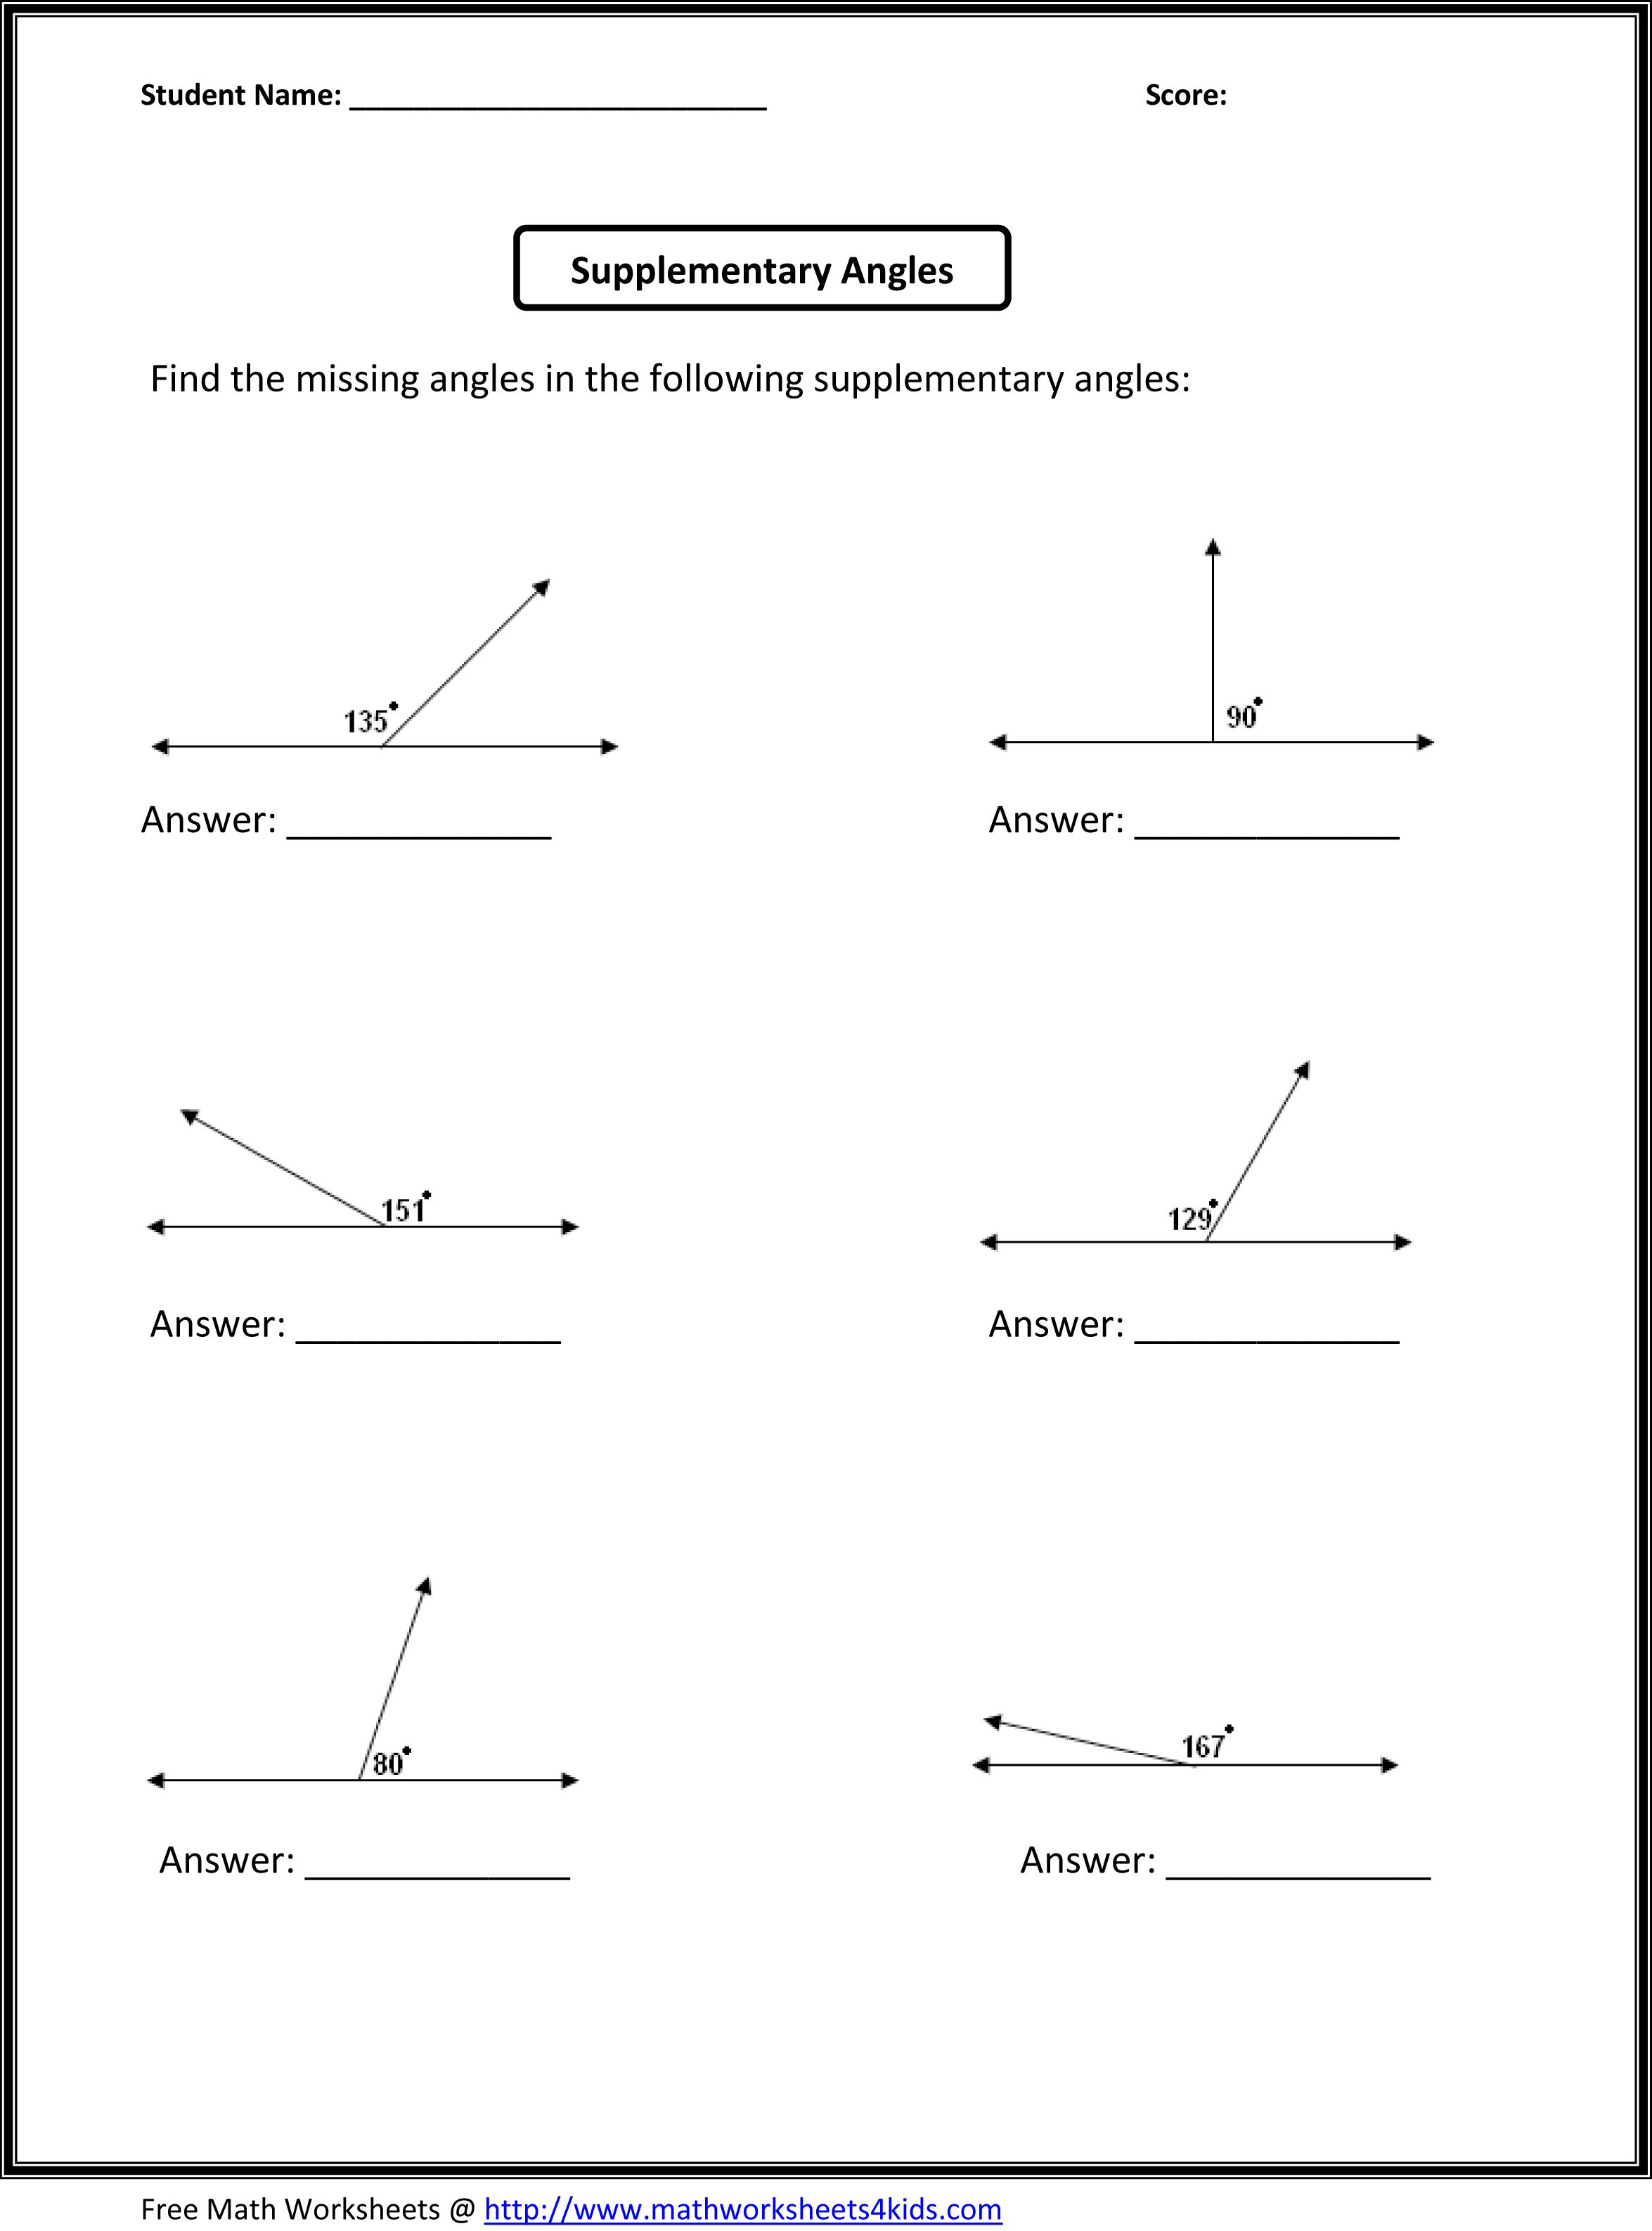 math worksheet : math worksheets for 6 graders  khayav : Math Worksheets For Grade 6 Pdf